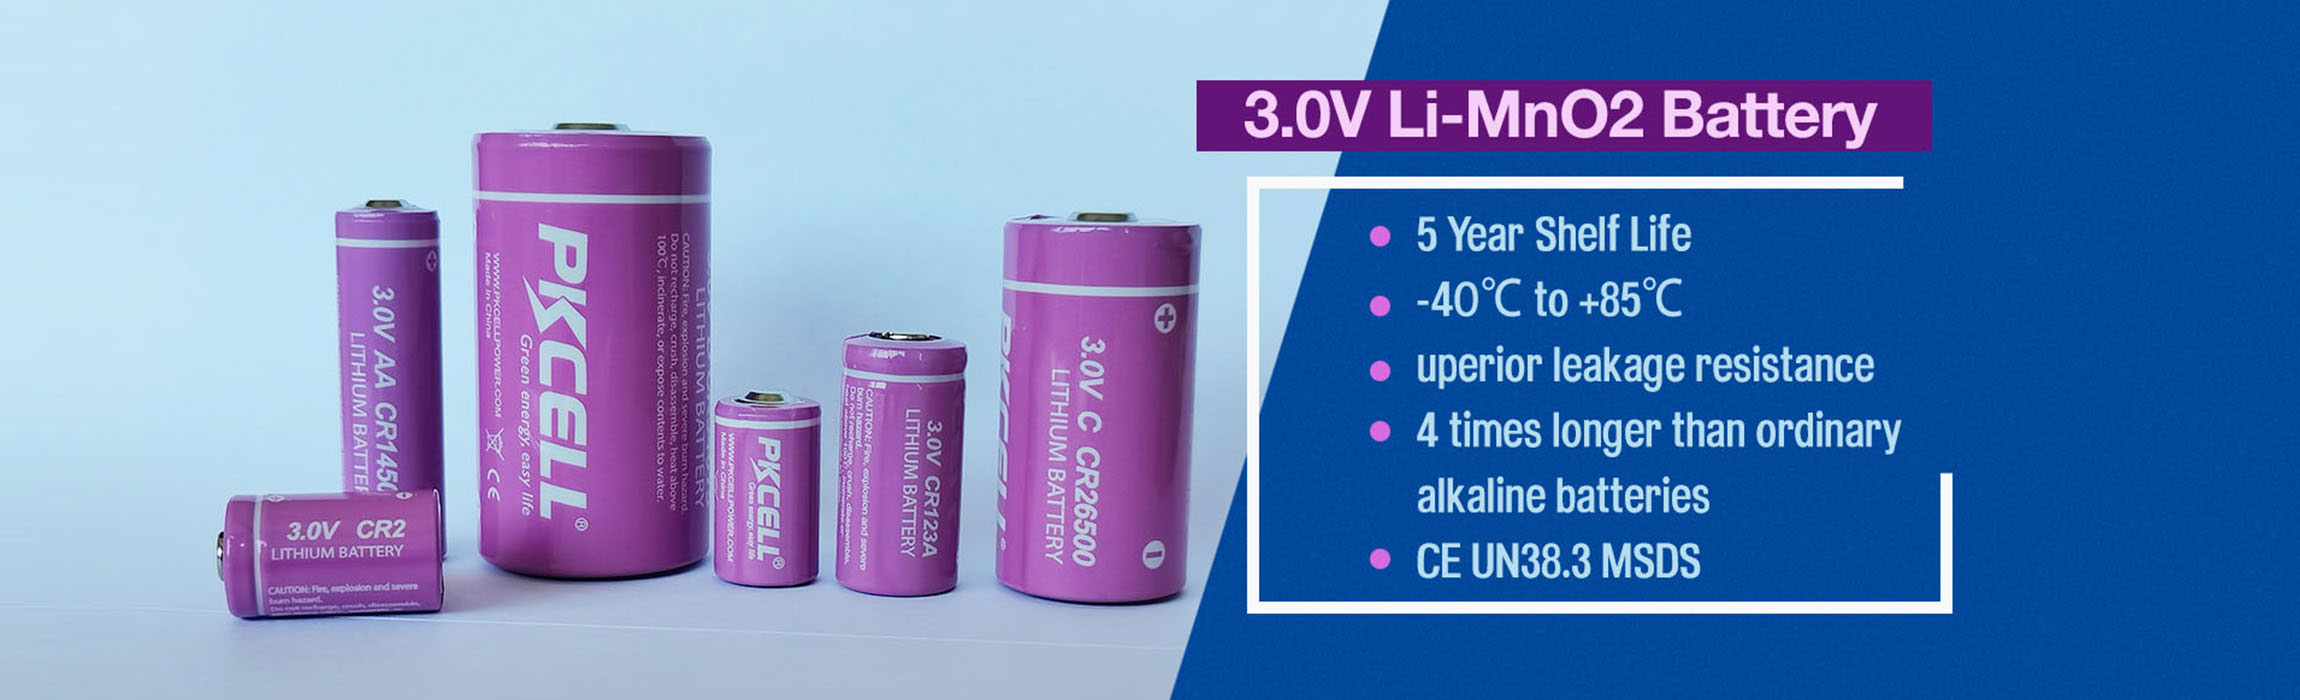 limno2battery Banner